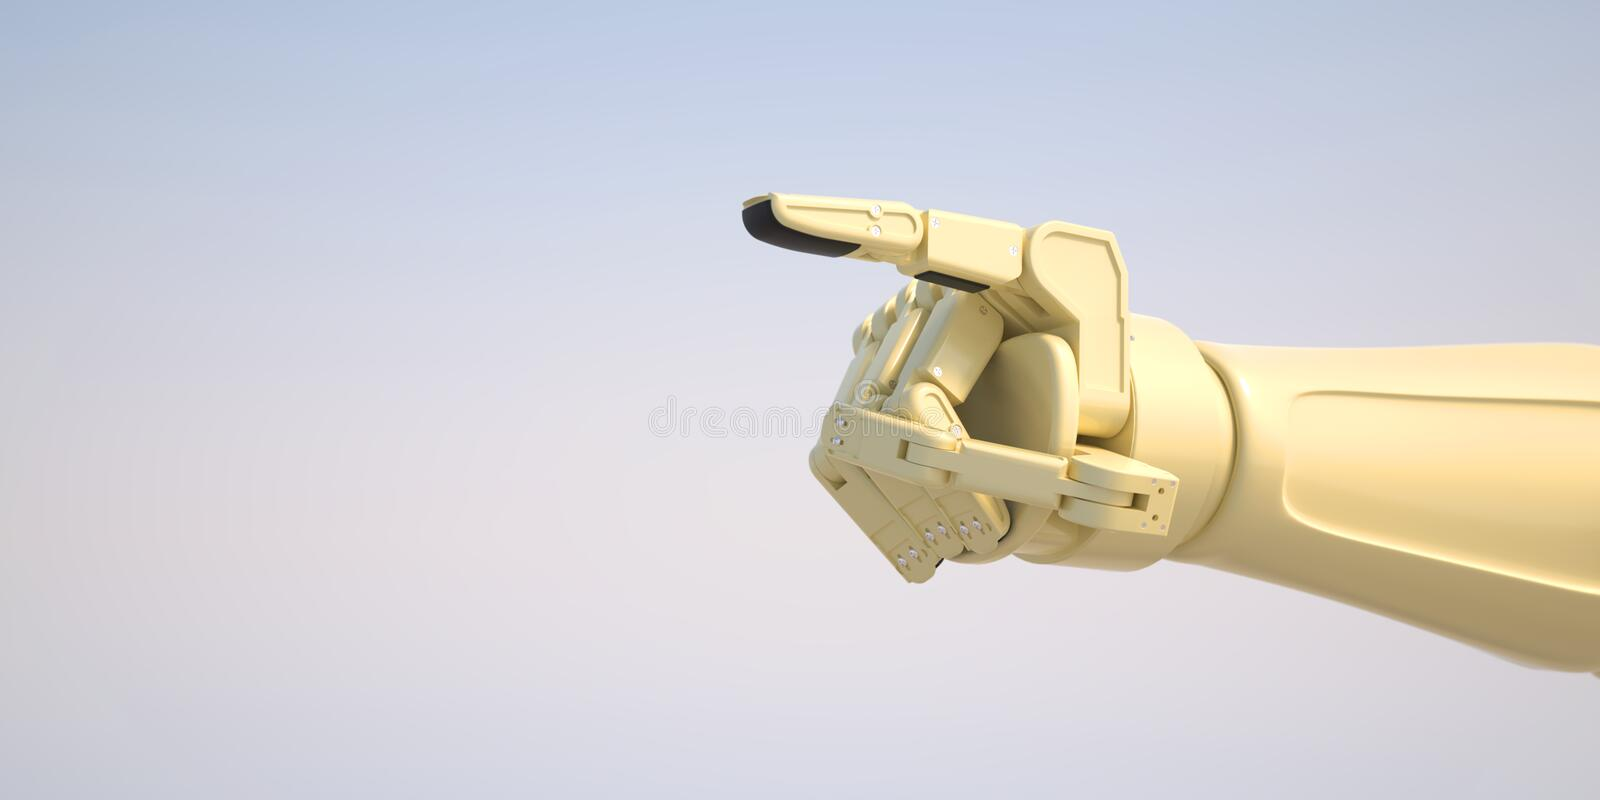 Robot giving command with his index finger royalty free stock photography